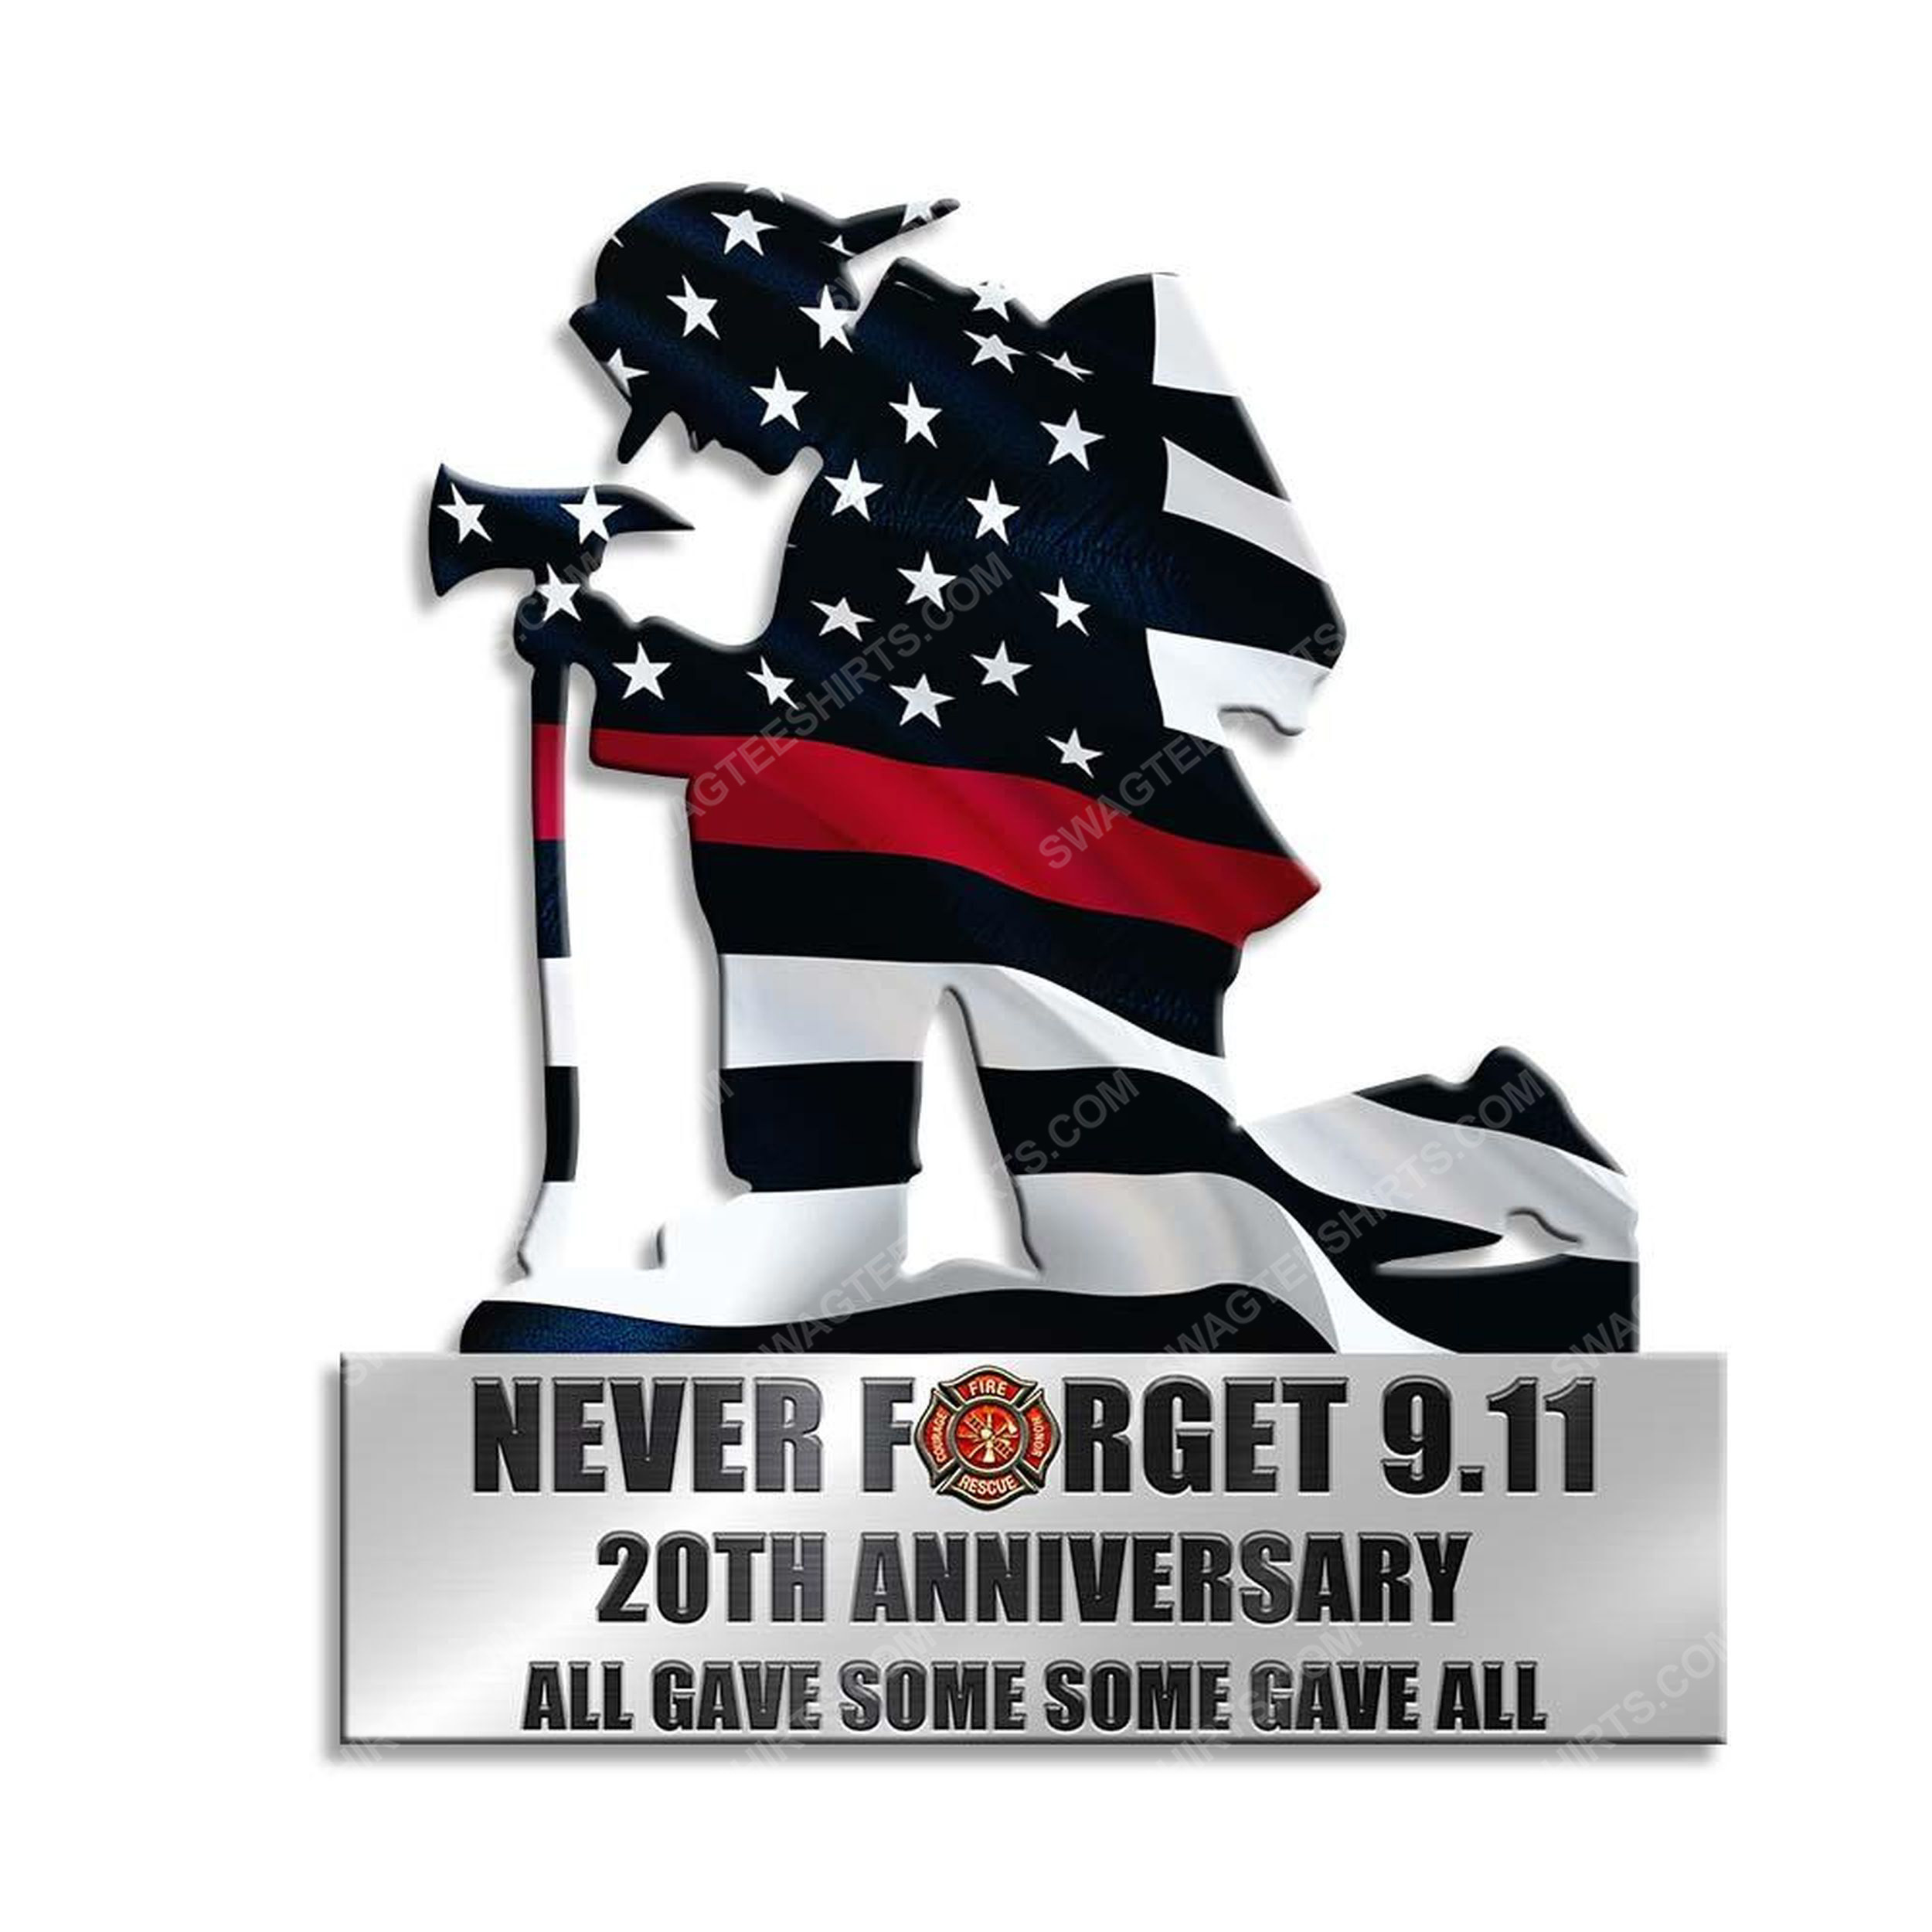 Kneeling firefighter never forget 9 11 20th anniversary yard sign 2(1)